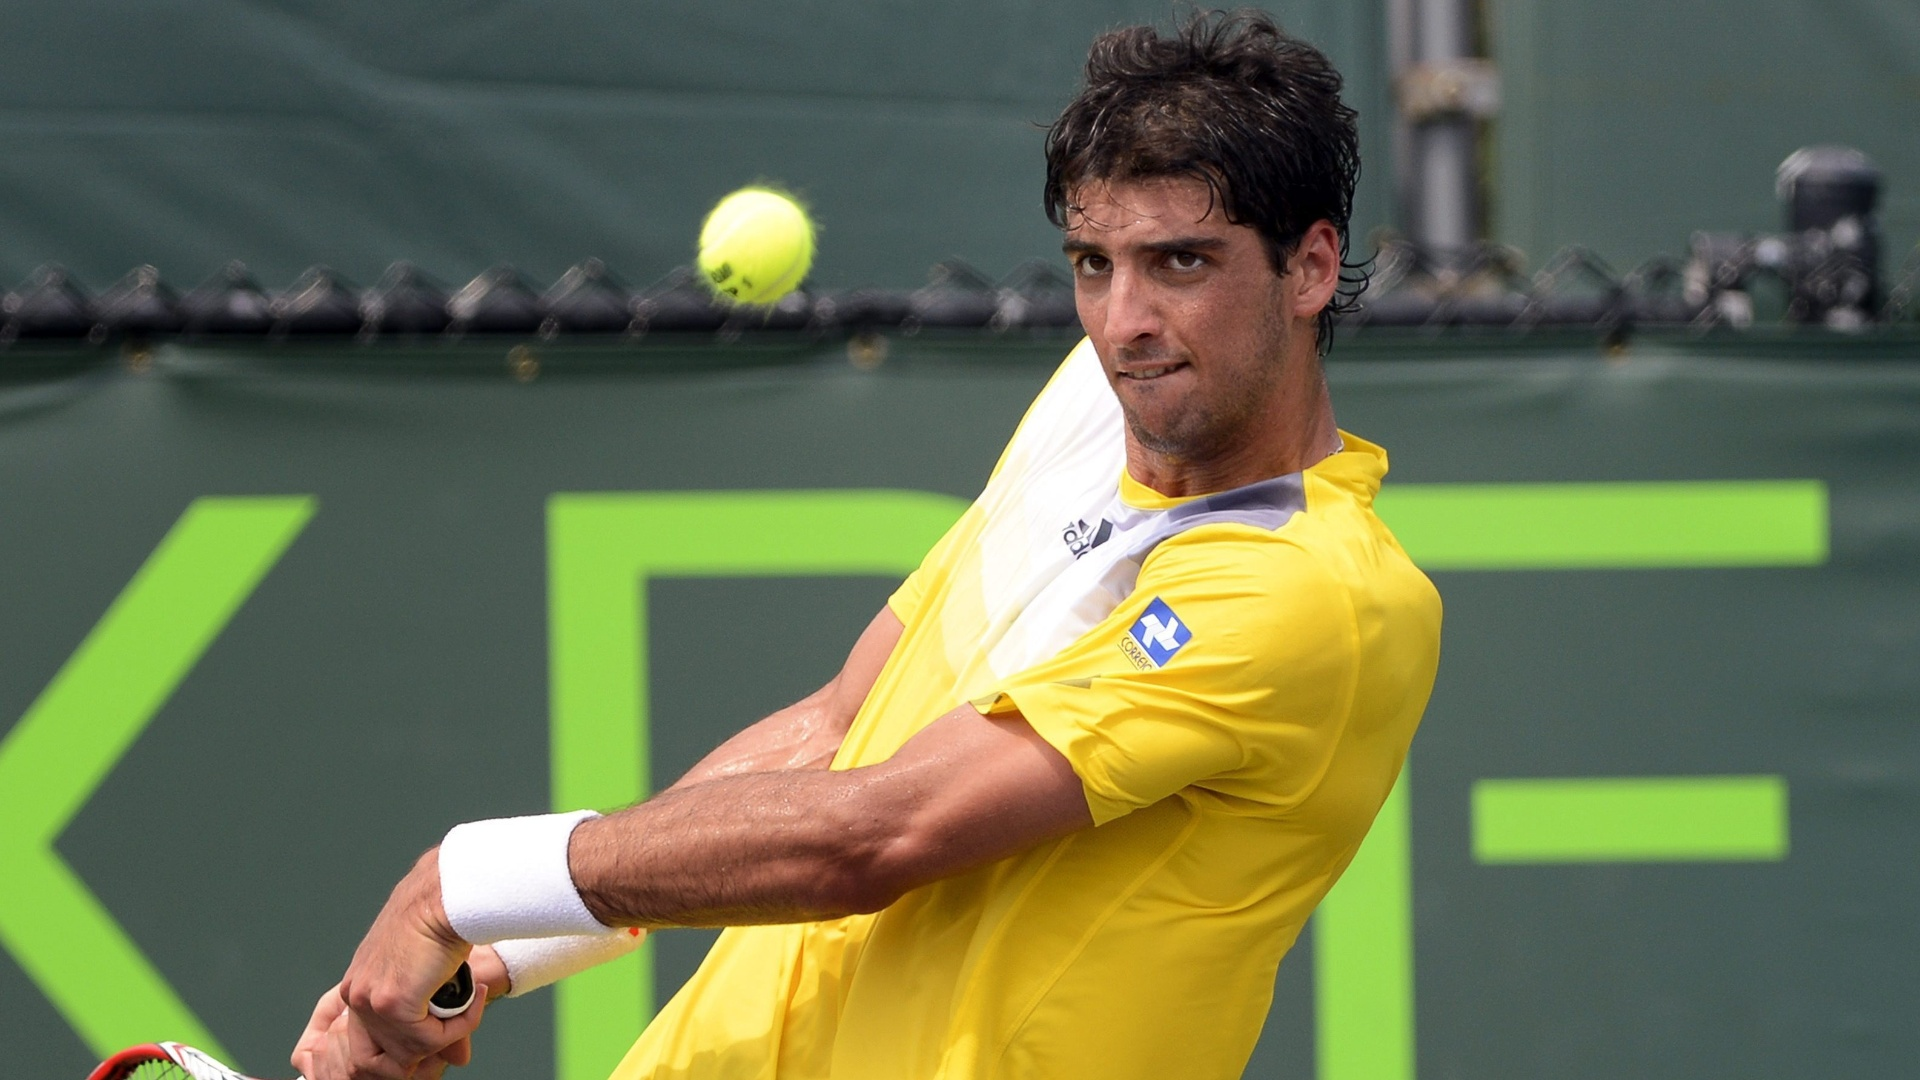 25.abr.2013 - O brasileiro Thomaz Bellucci venceu o russo Dmitry Tursunov por 2 sets a 1